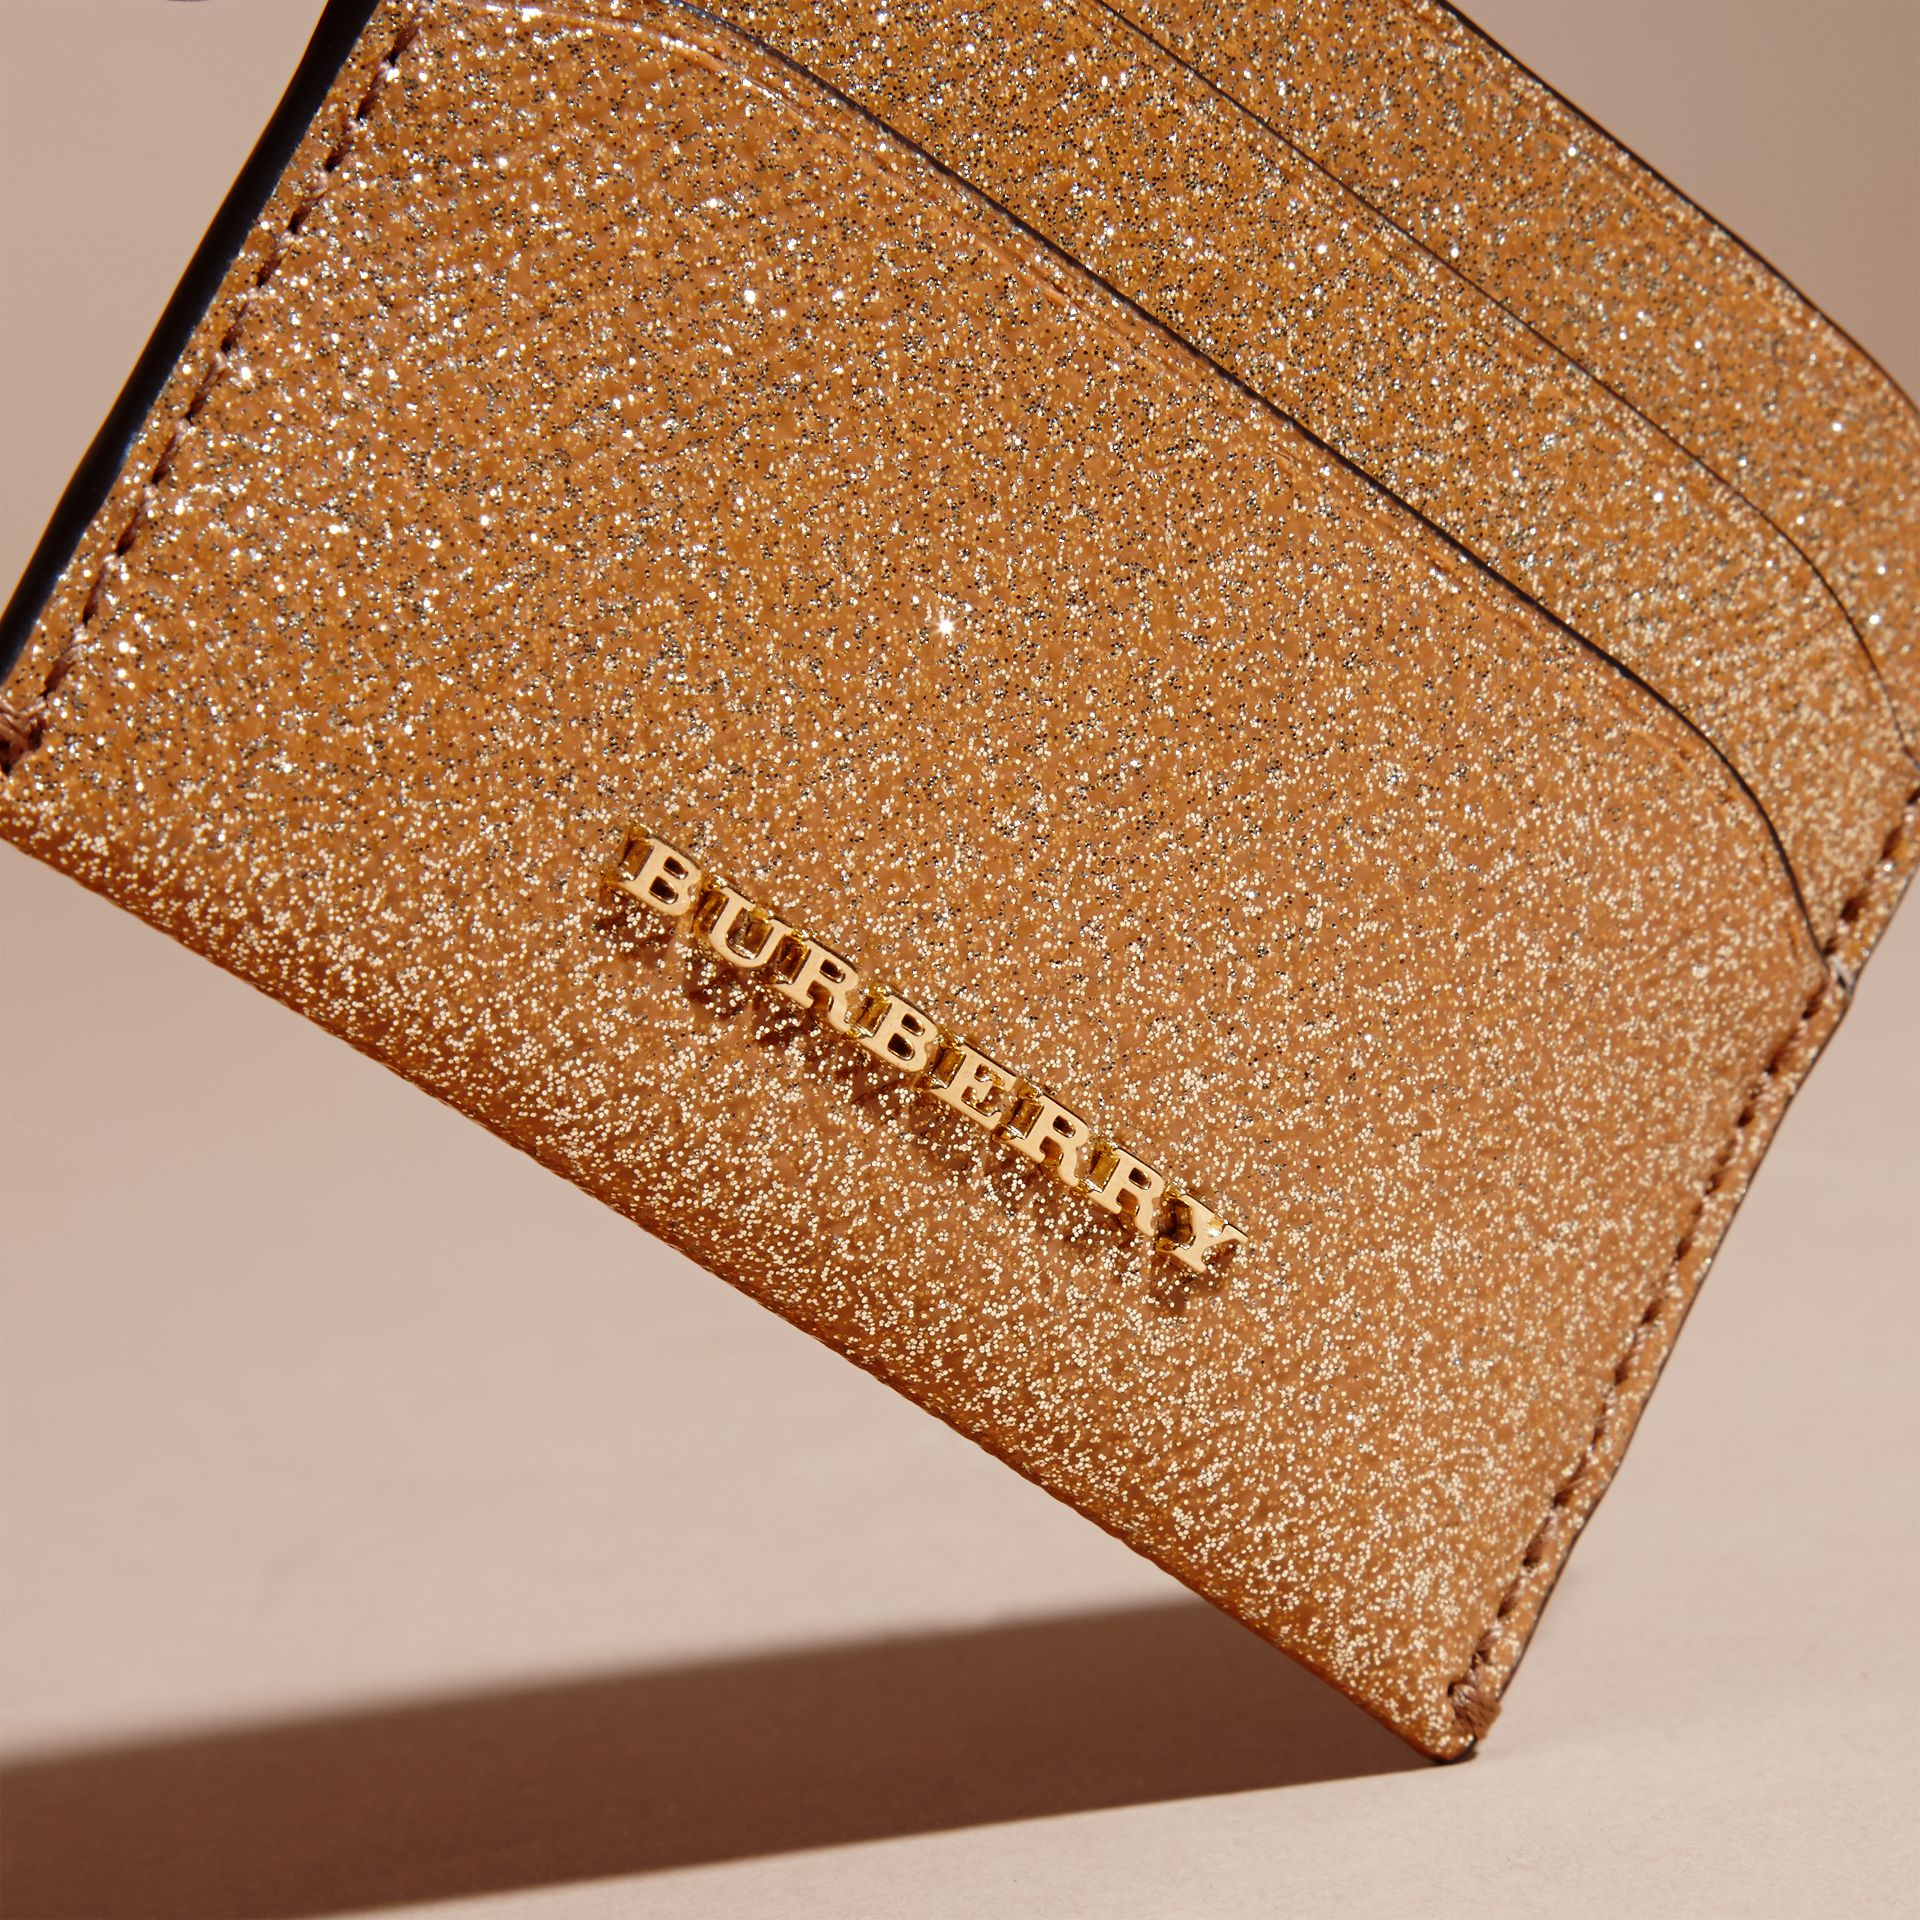 London Leather Glitter Card Case in Camel / Gold - gallery image 2